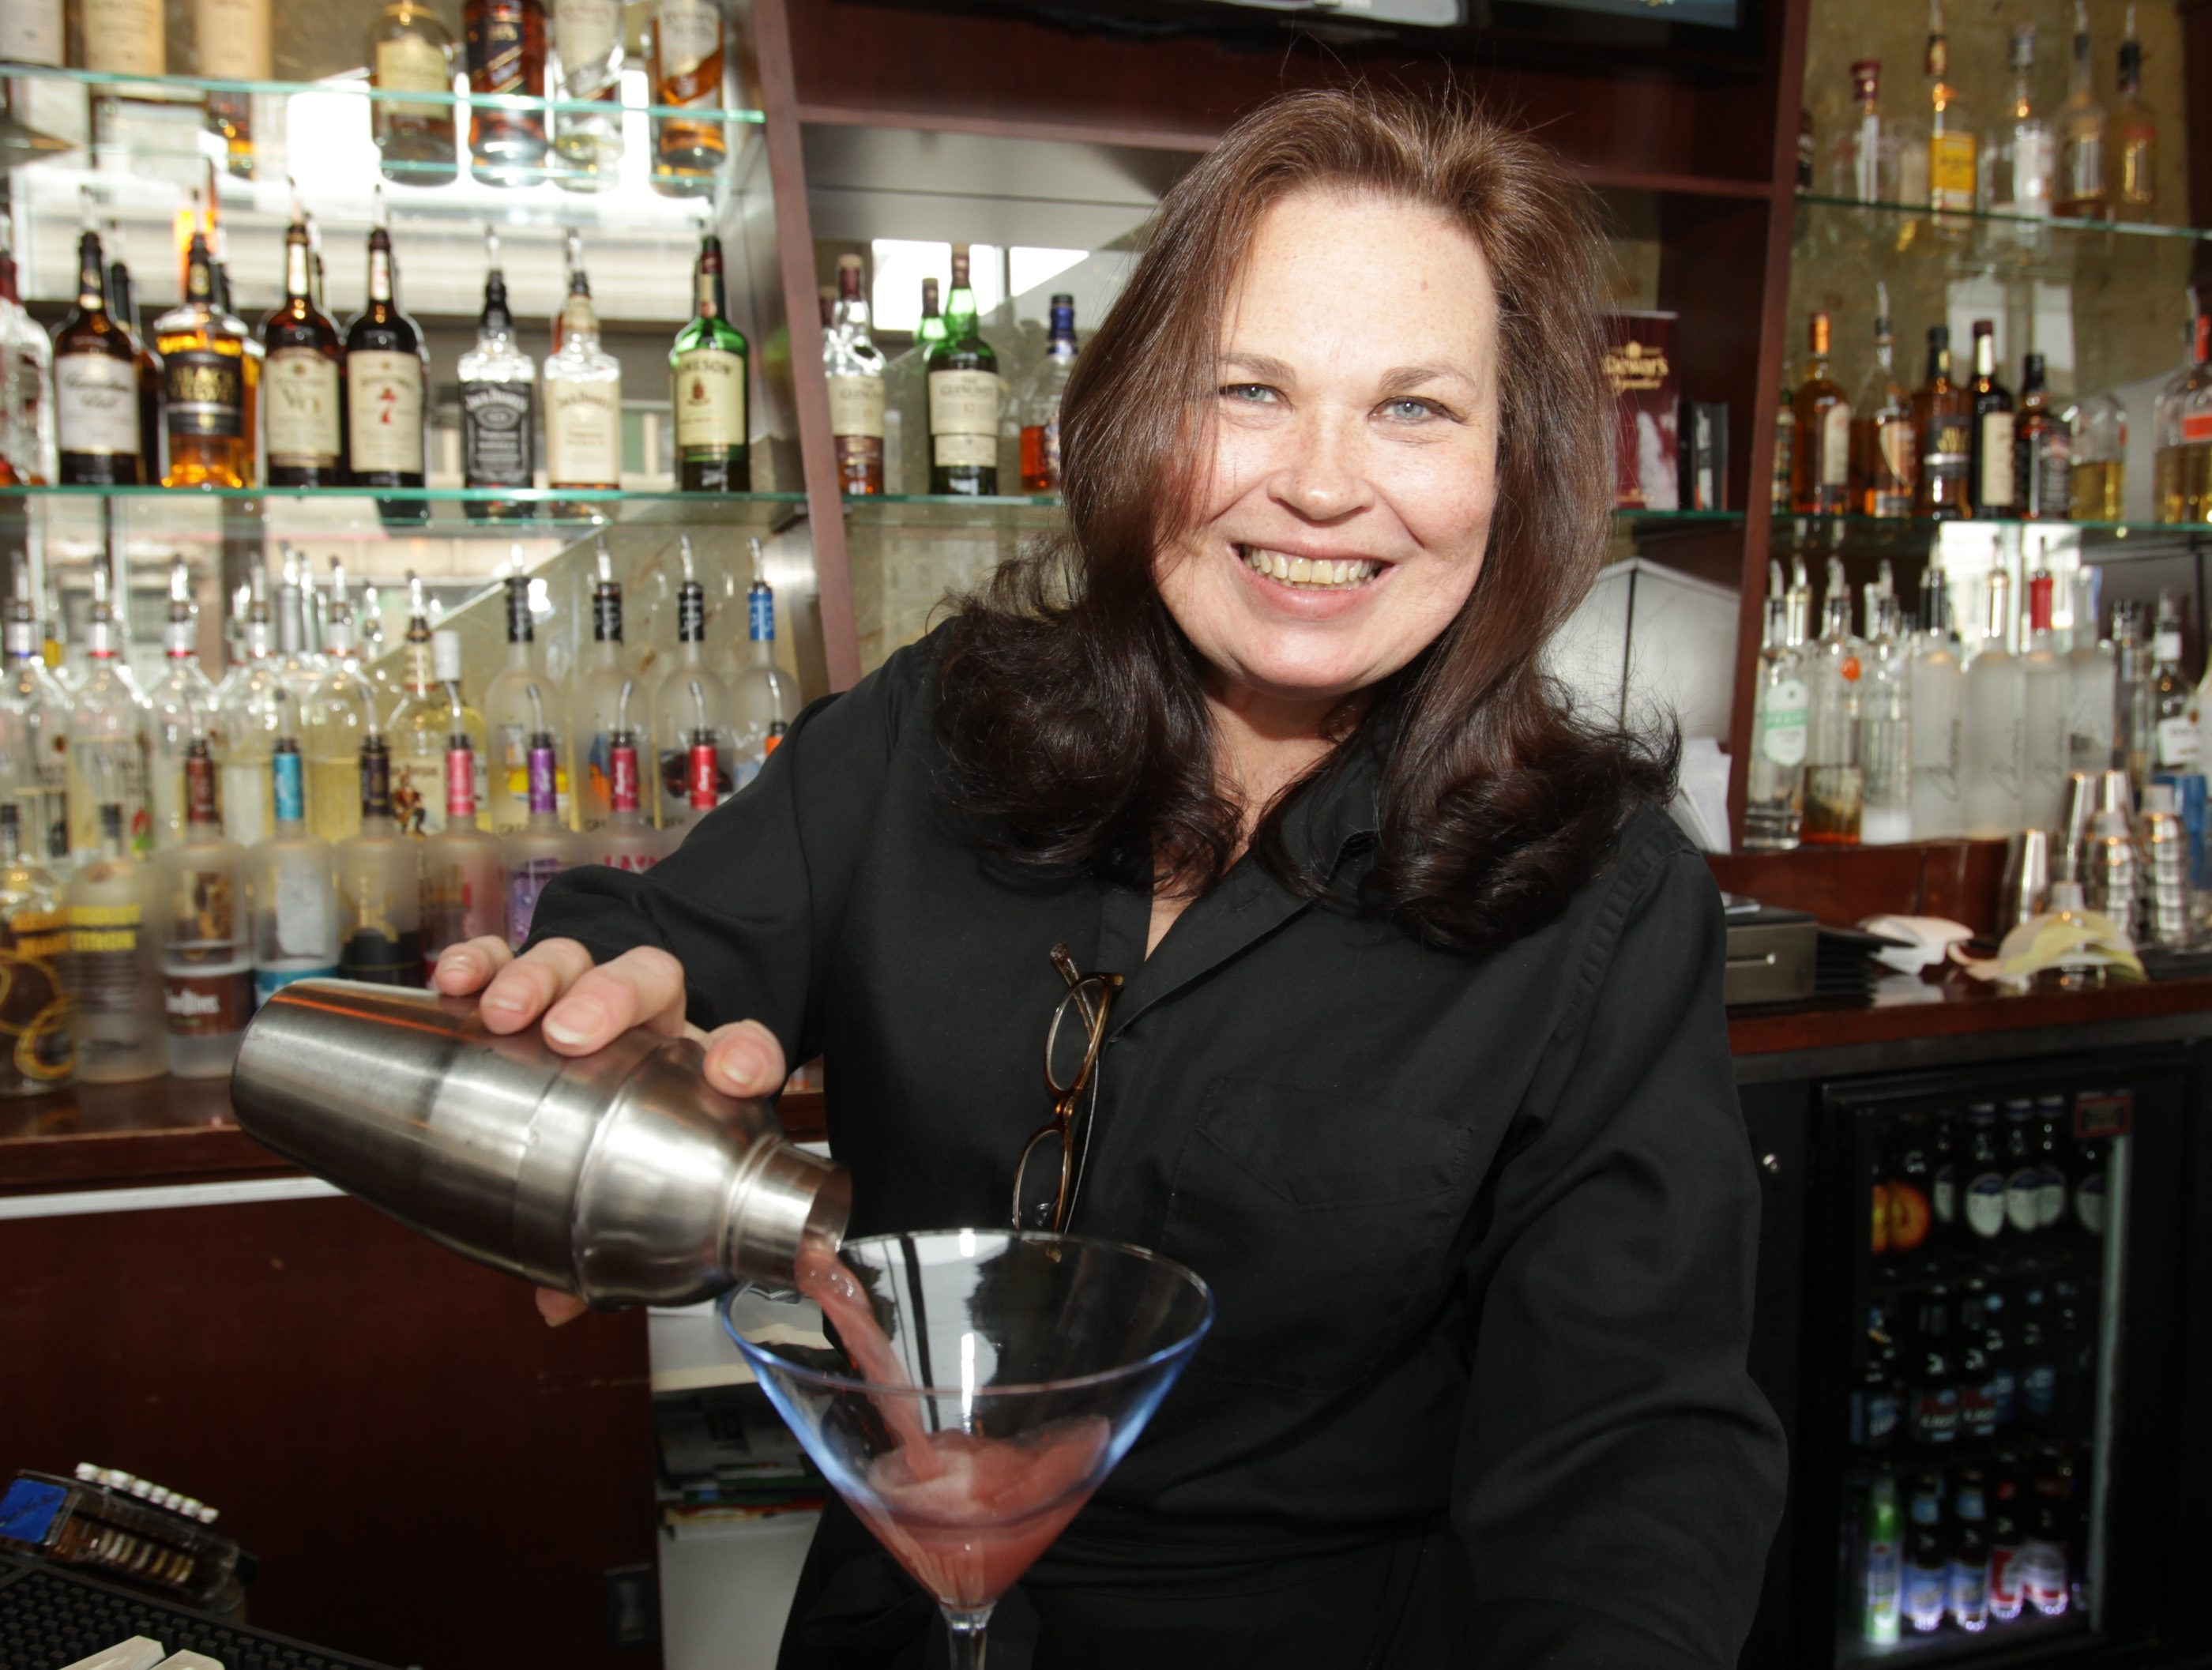 Kim Panzarella pours a martini, a specialty at Papaya.